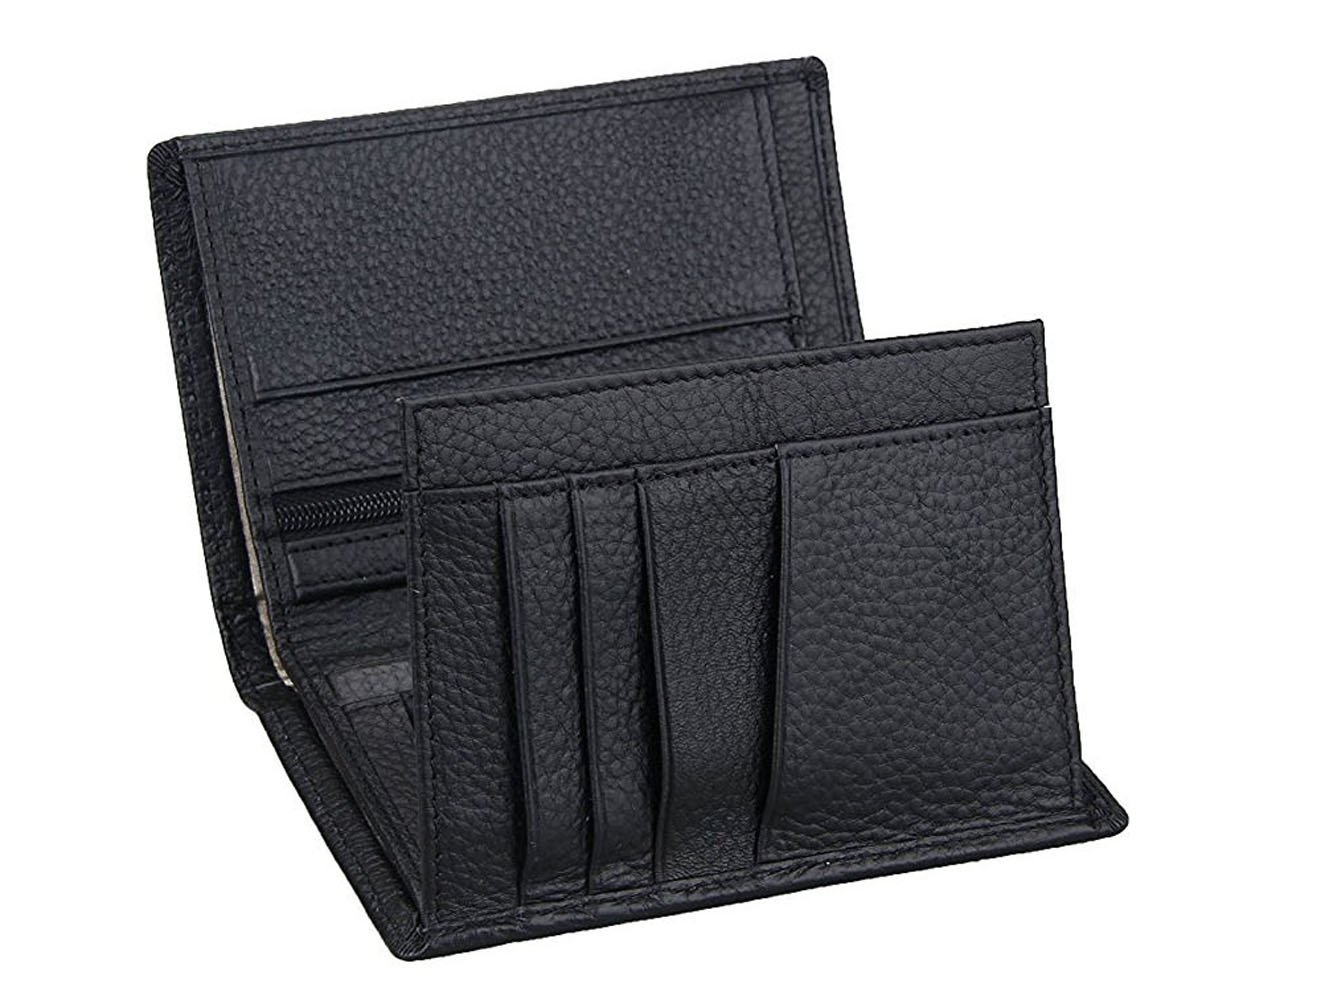 Genuine Leather RFID blocking wallet for man, Multi-slots leather wallet Maxcy